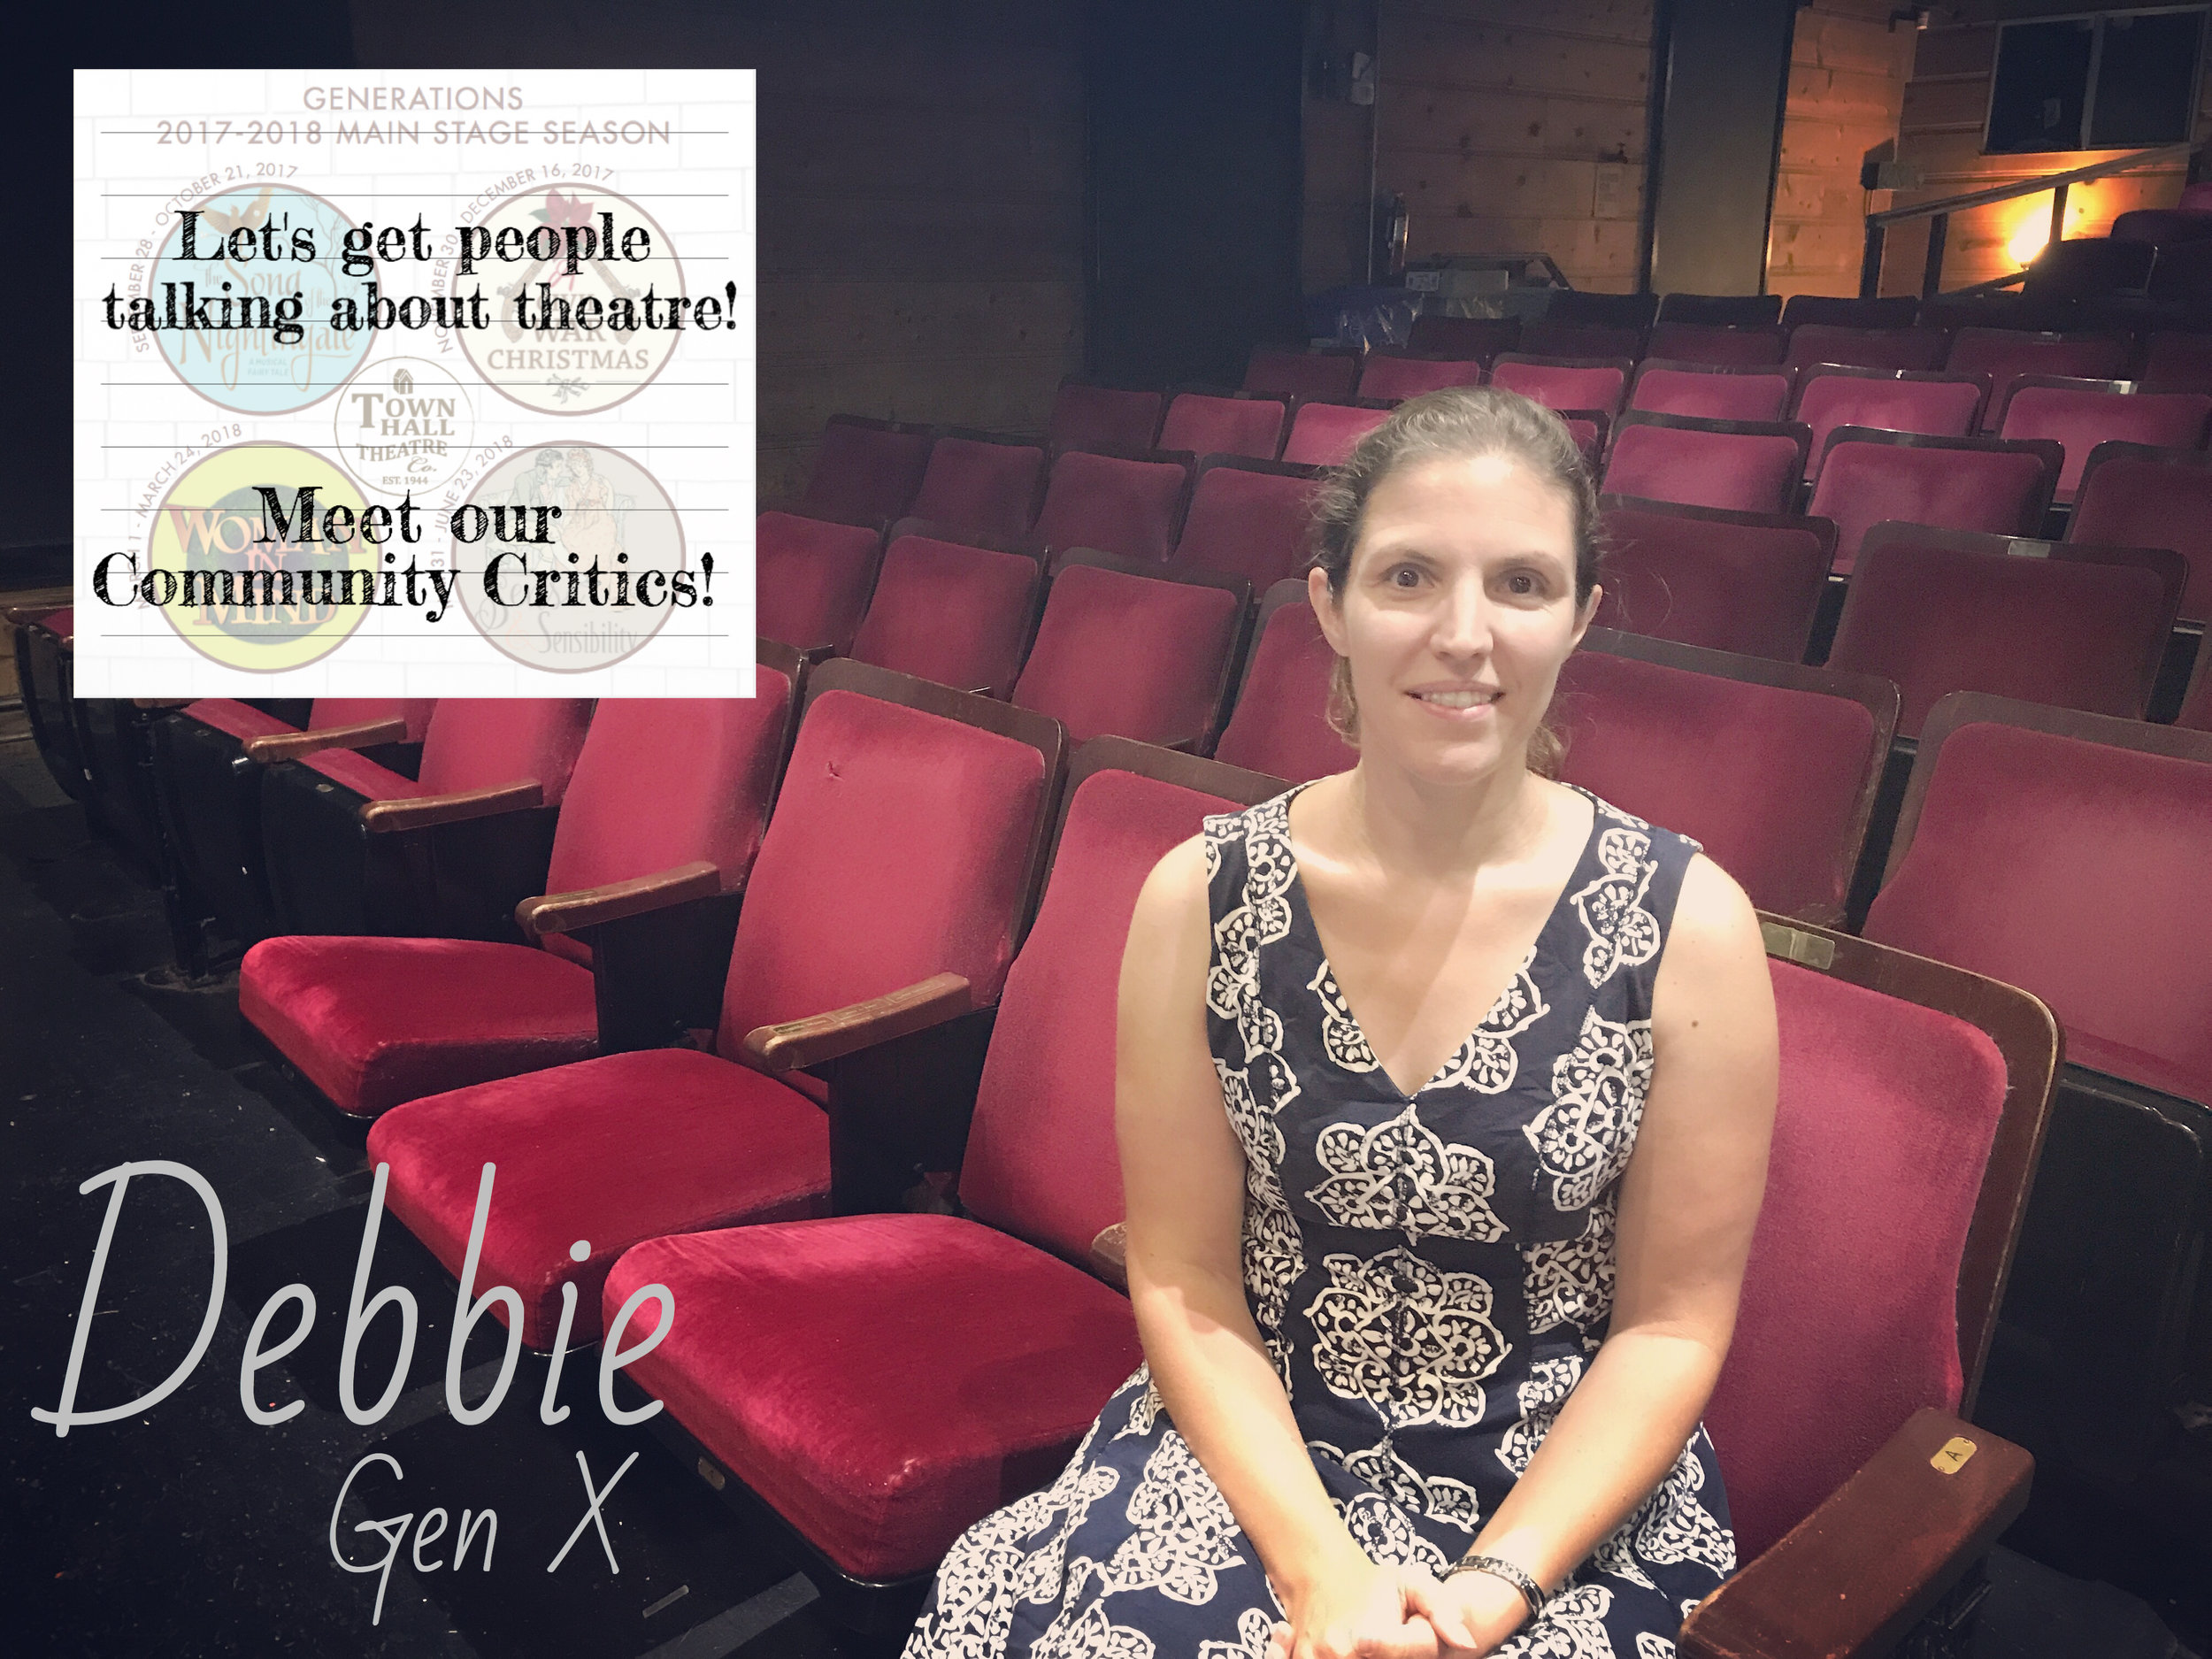 Debbie - READ WHAT DEBBIE HAS TO SAY ABOUT OUR UPCOMING SEASON!READ WHAT DEBORAH HAS TO SAY ABOUT SONG OF THE NIGHTINGALE!READ WHAT DEBBIE HAS TO SAY ABOUT A CIVIL WAR CHRISTMAS!READ WHAT DEBBIE HAS TO SAY ABOUT WOMAN IN MIND!READ WHAT DEBBIE HAS TO SAY ABOUT SENSE AND SENSIBILITY!